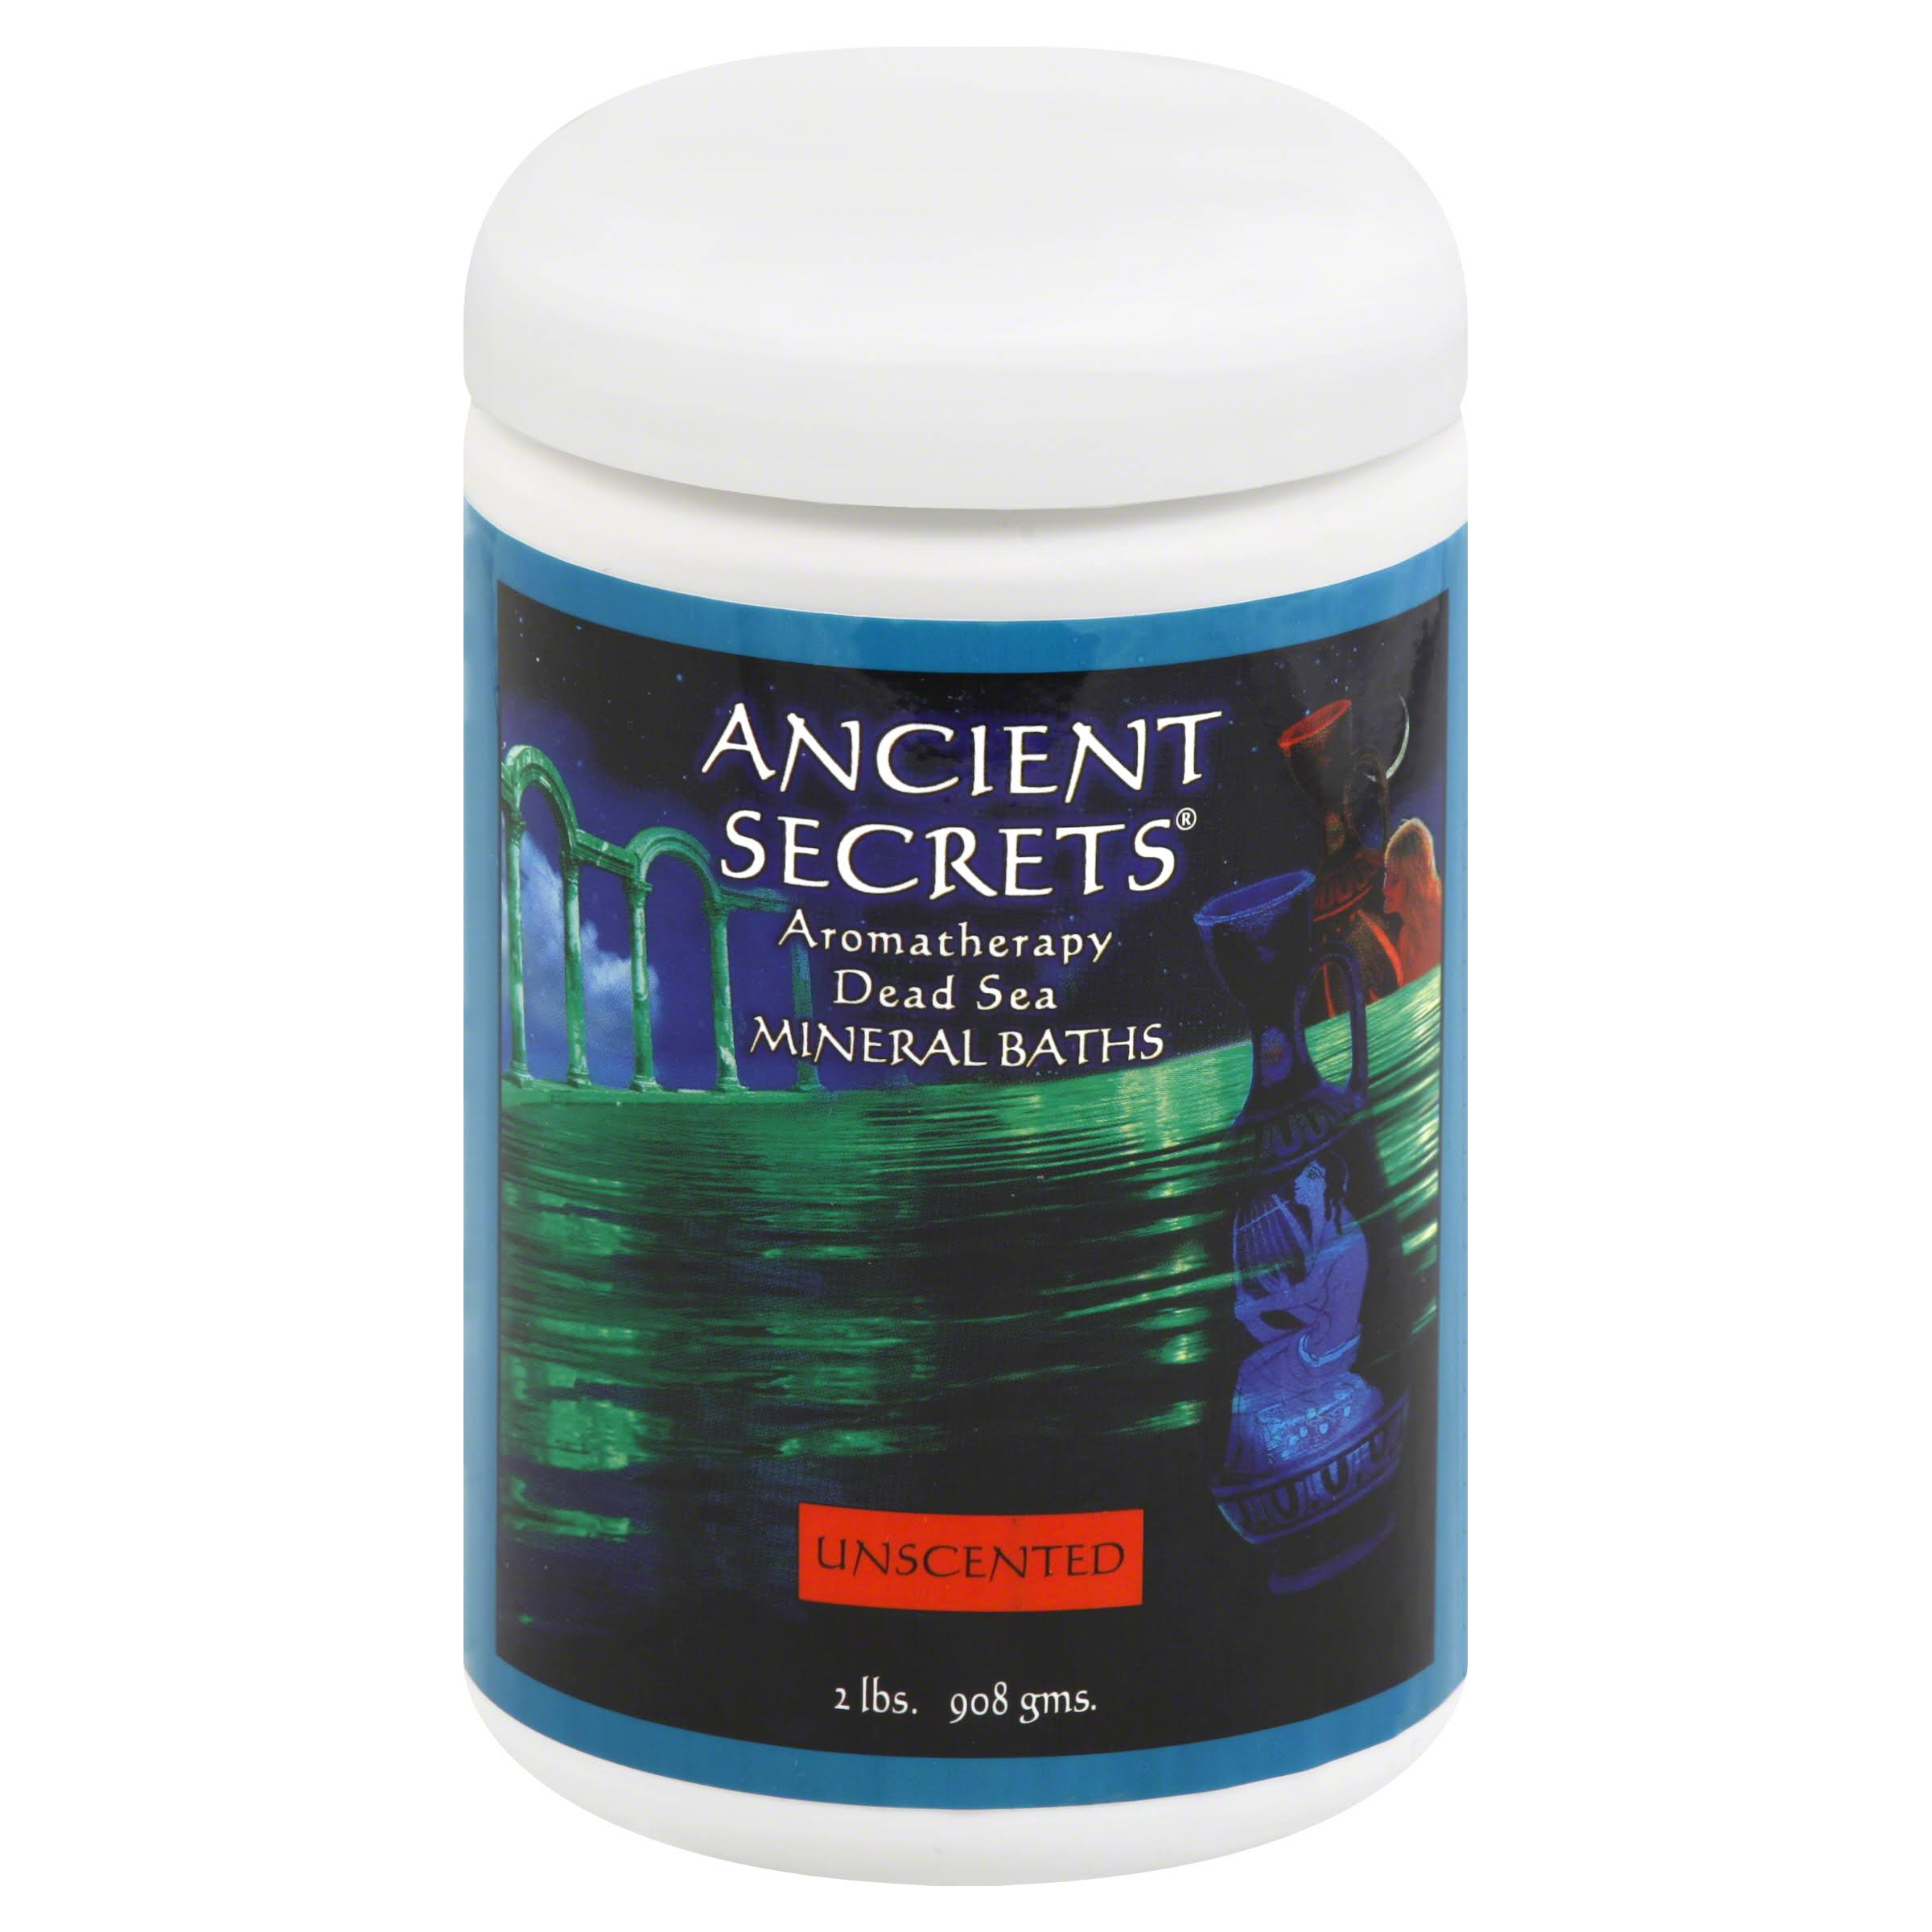 Ancient Secrets Aromatherapy Dead Sea Mineral Baths - Unscented, 2lbs